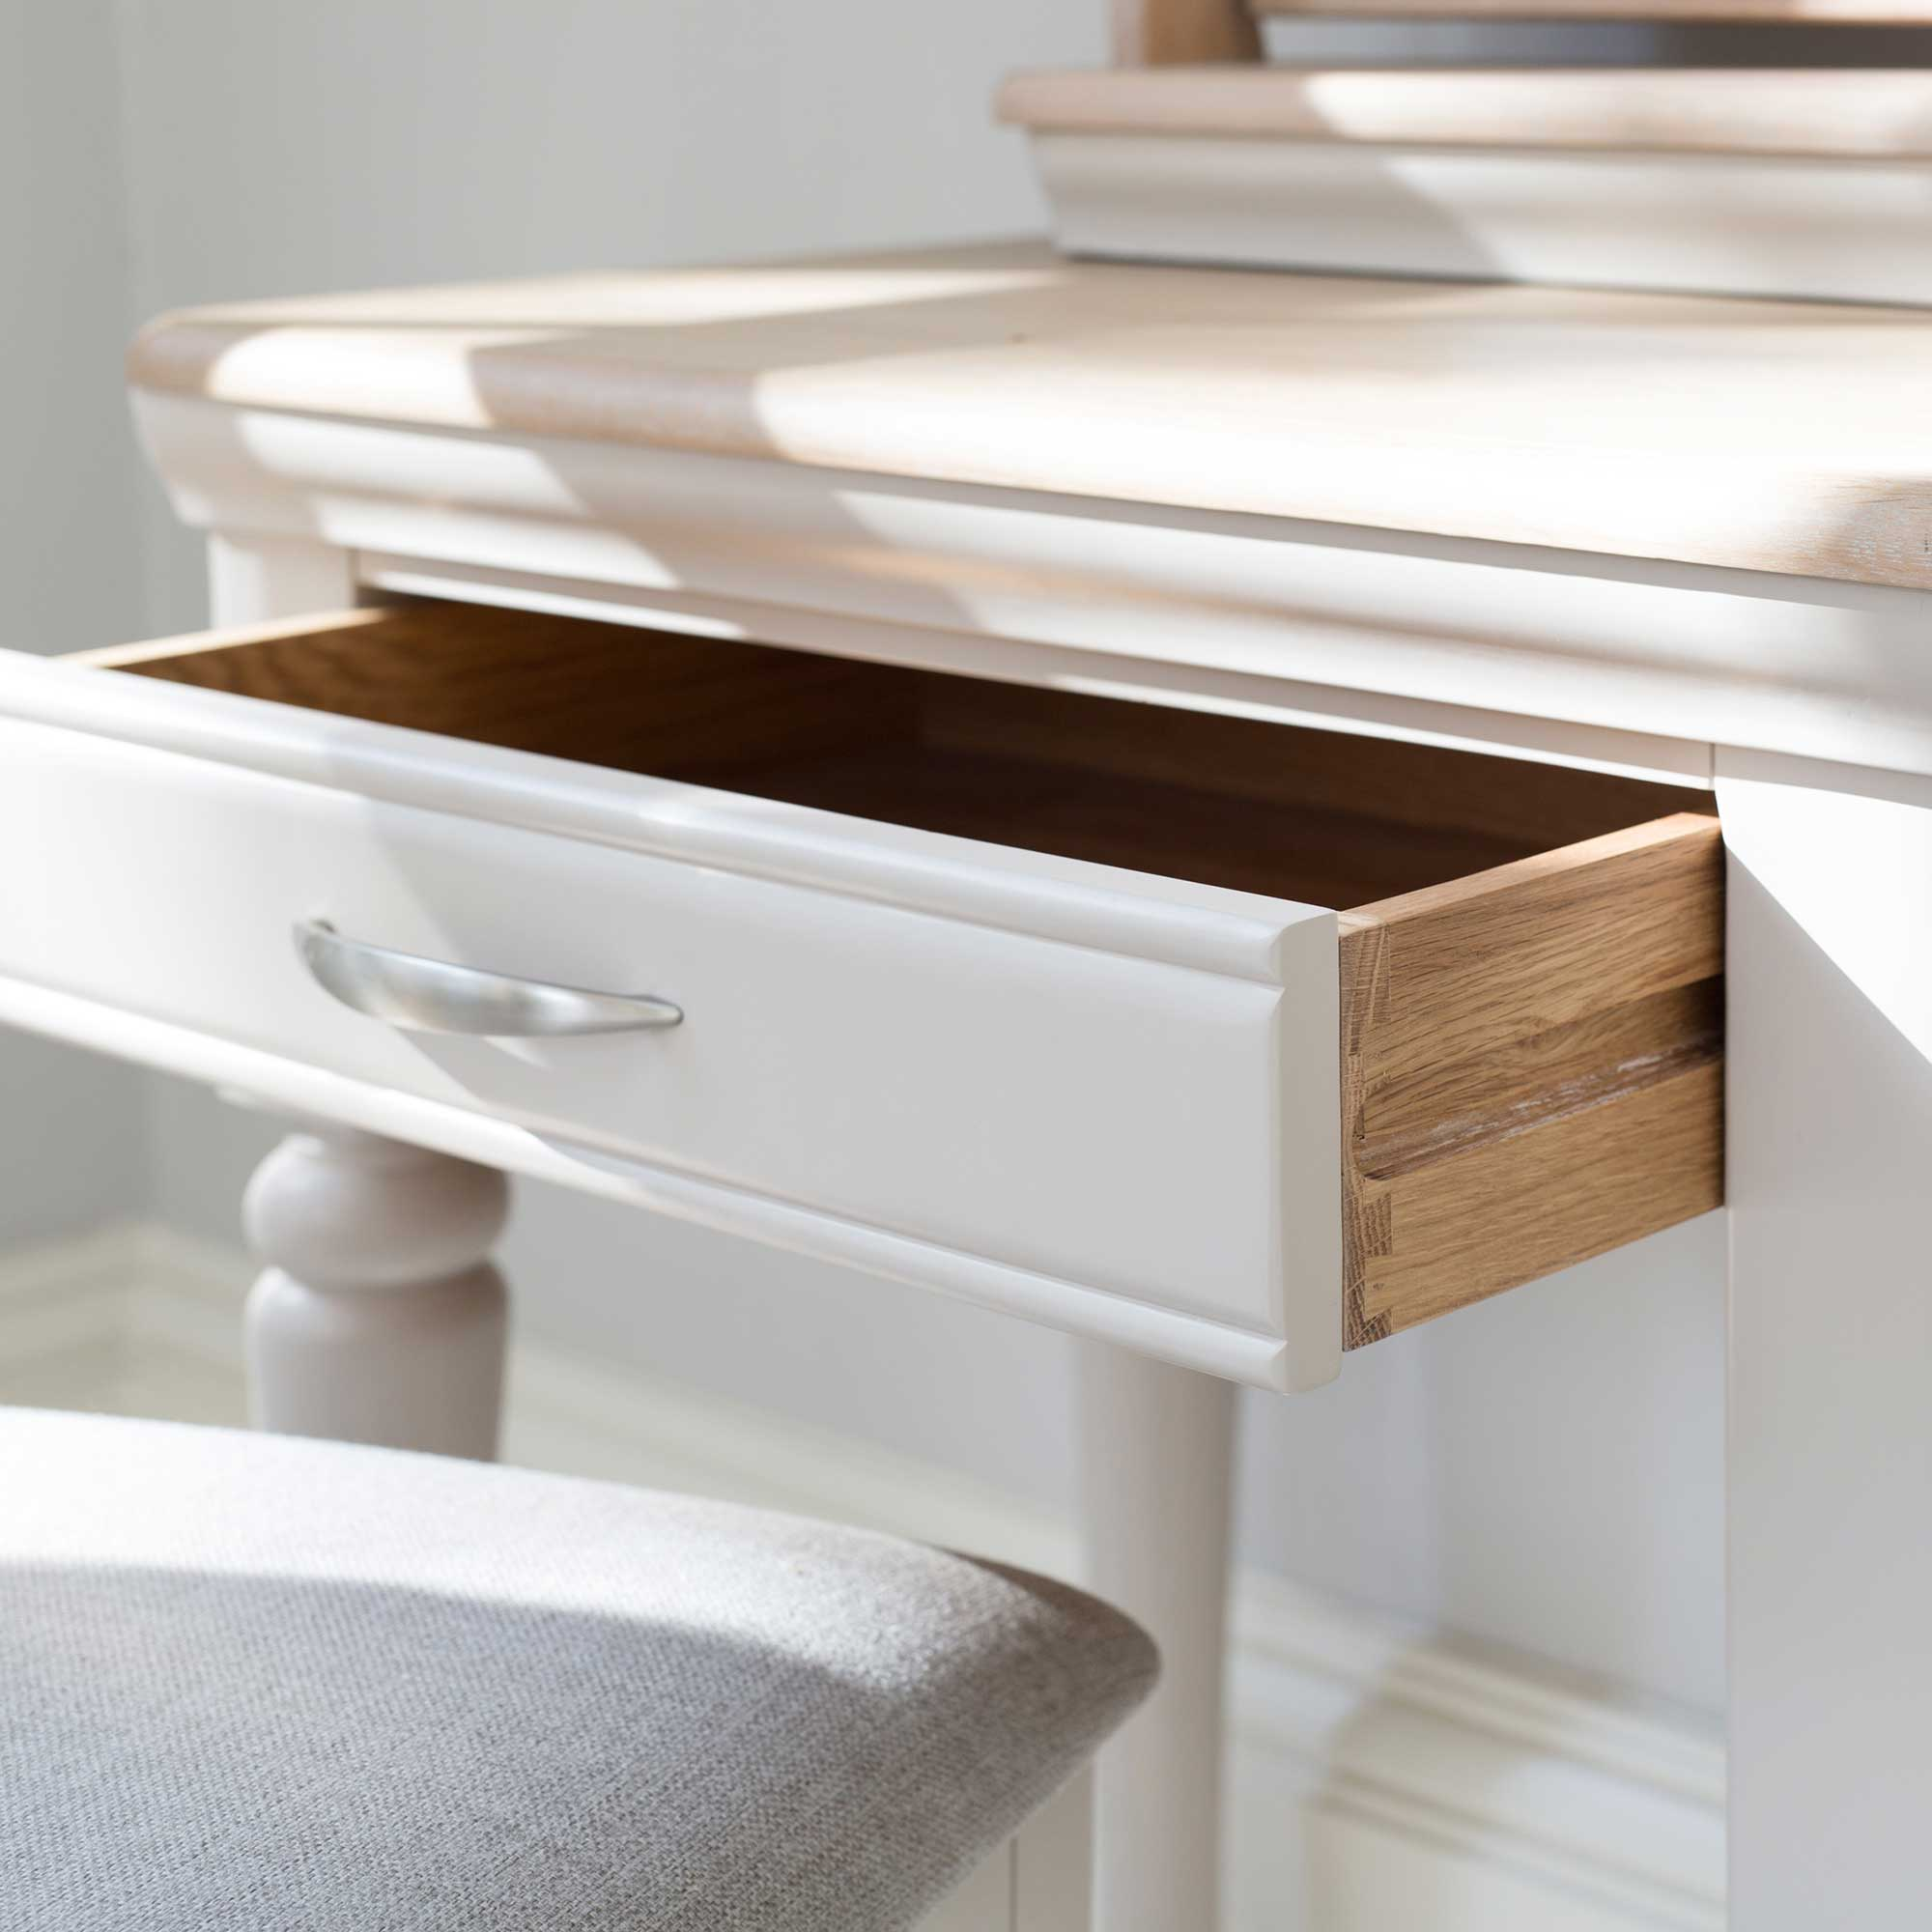 TONI DRESSING TABLE - DRAWER DETAIL